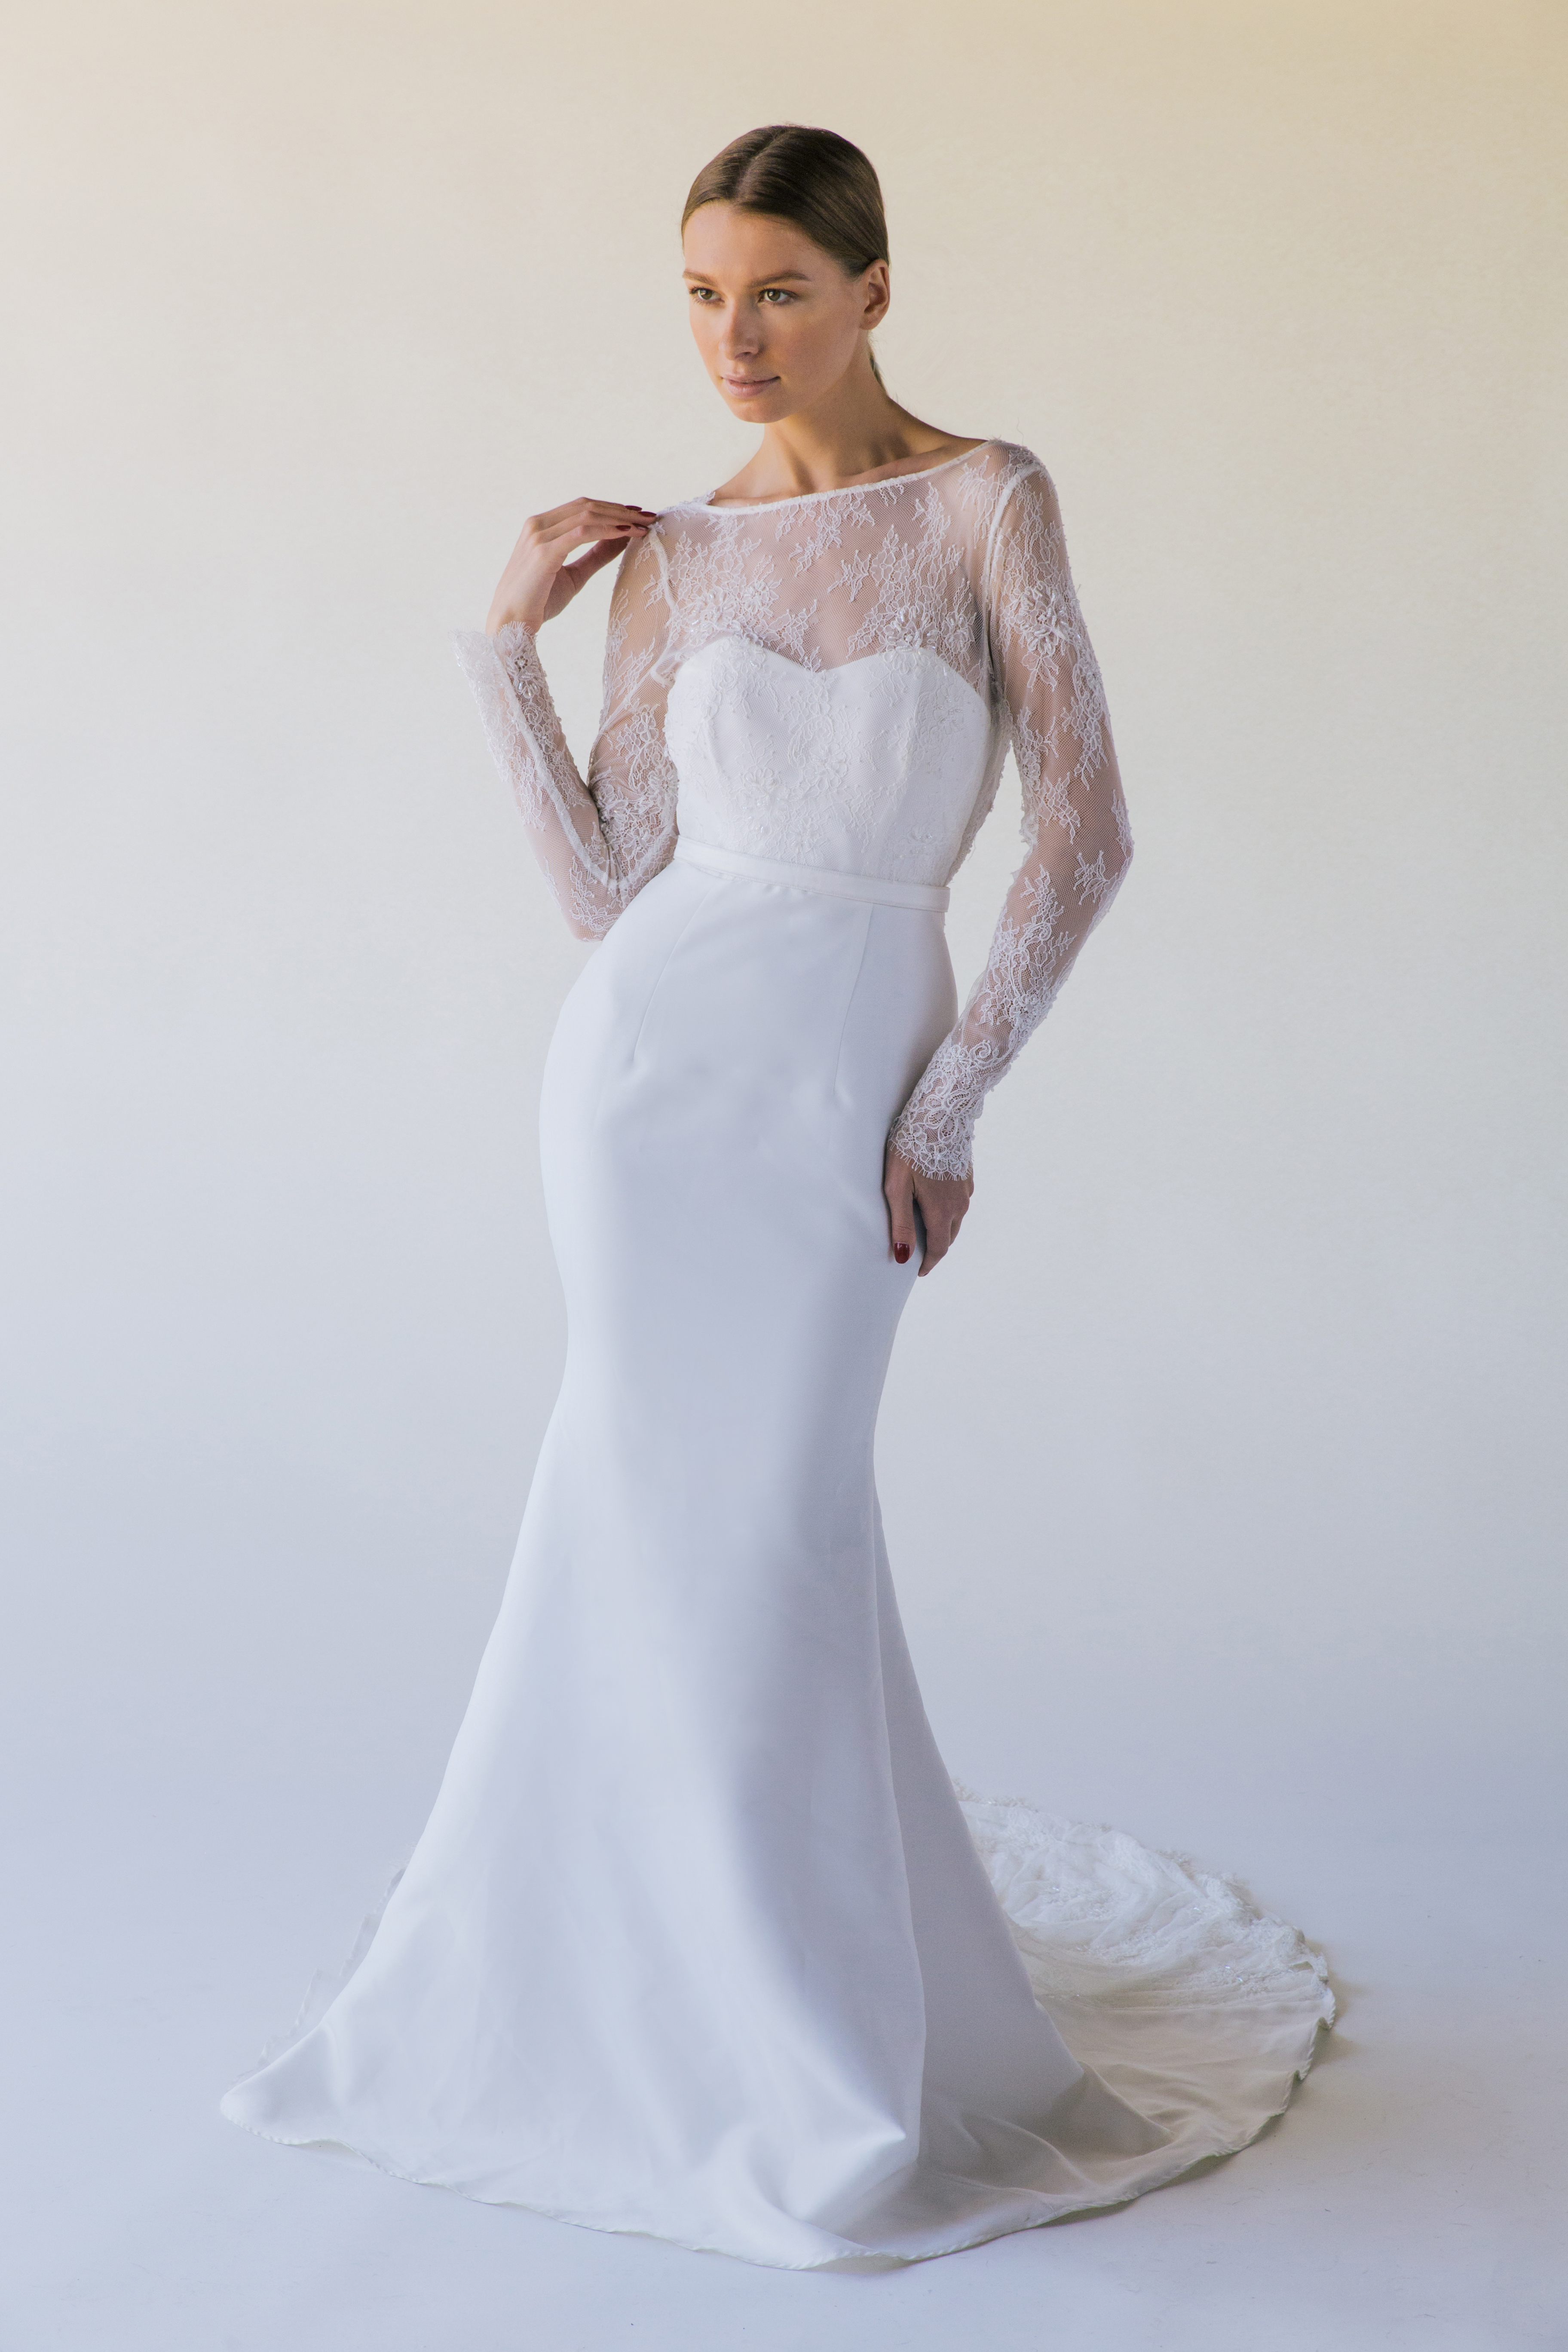 Wedding Dresses By Trish Peng Paperswan Bride Nz